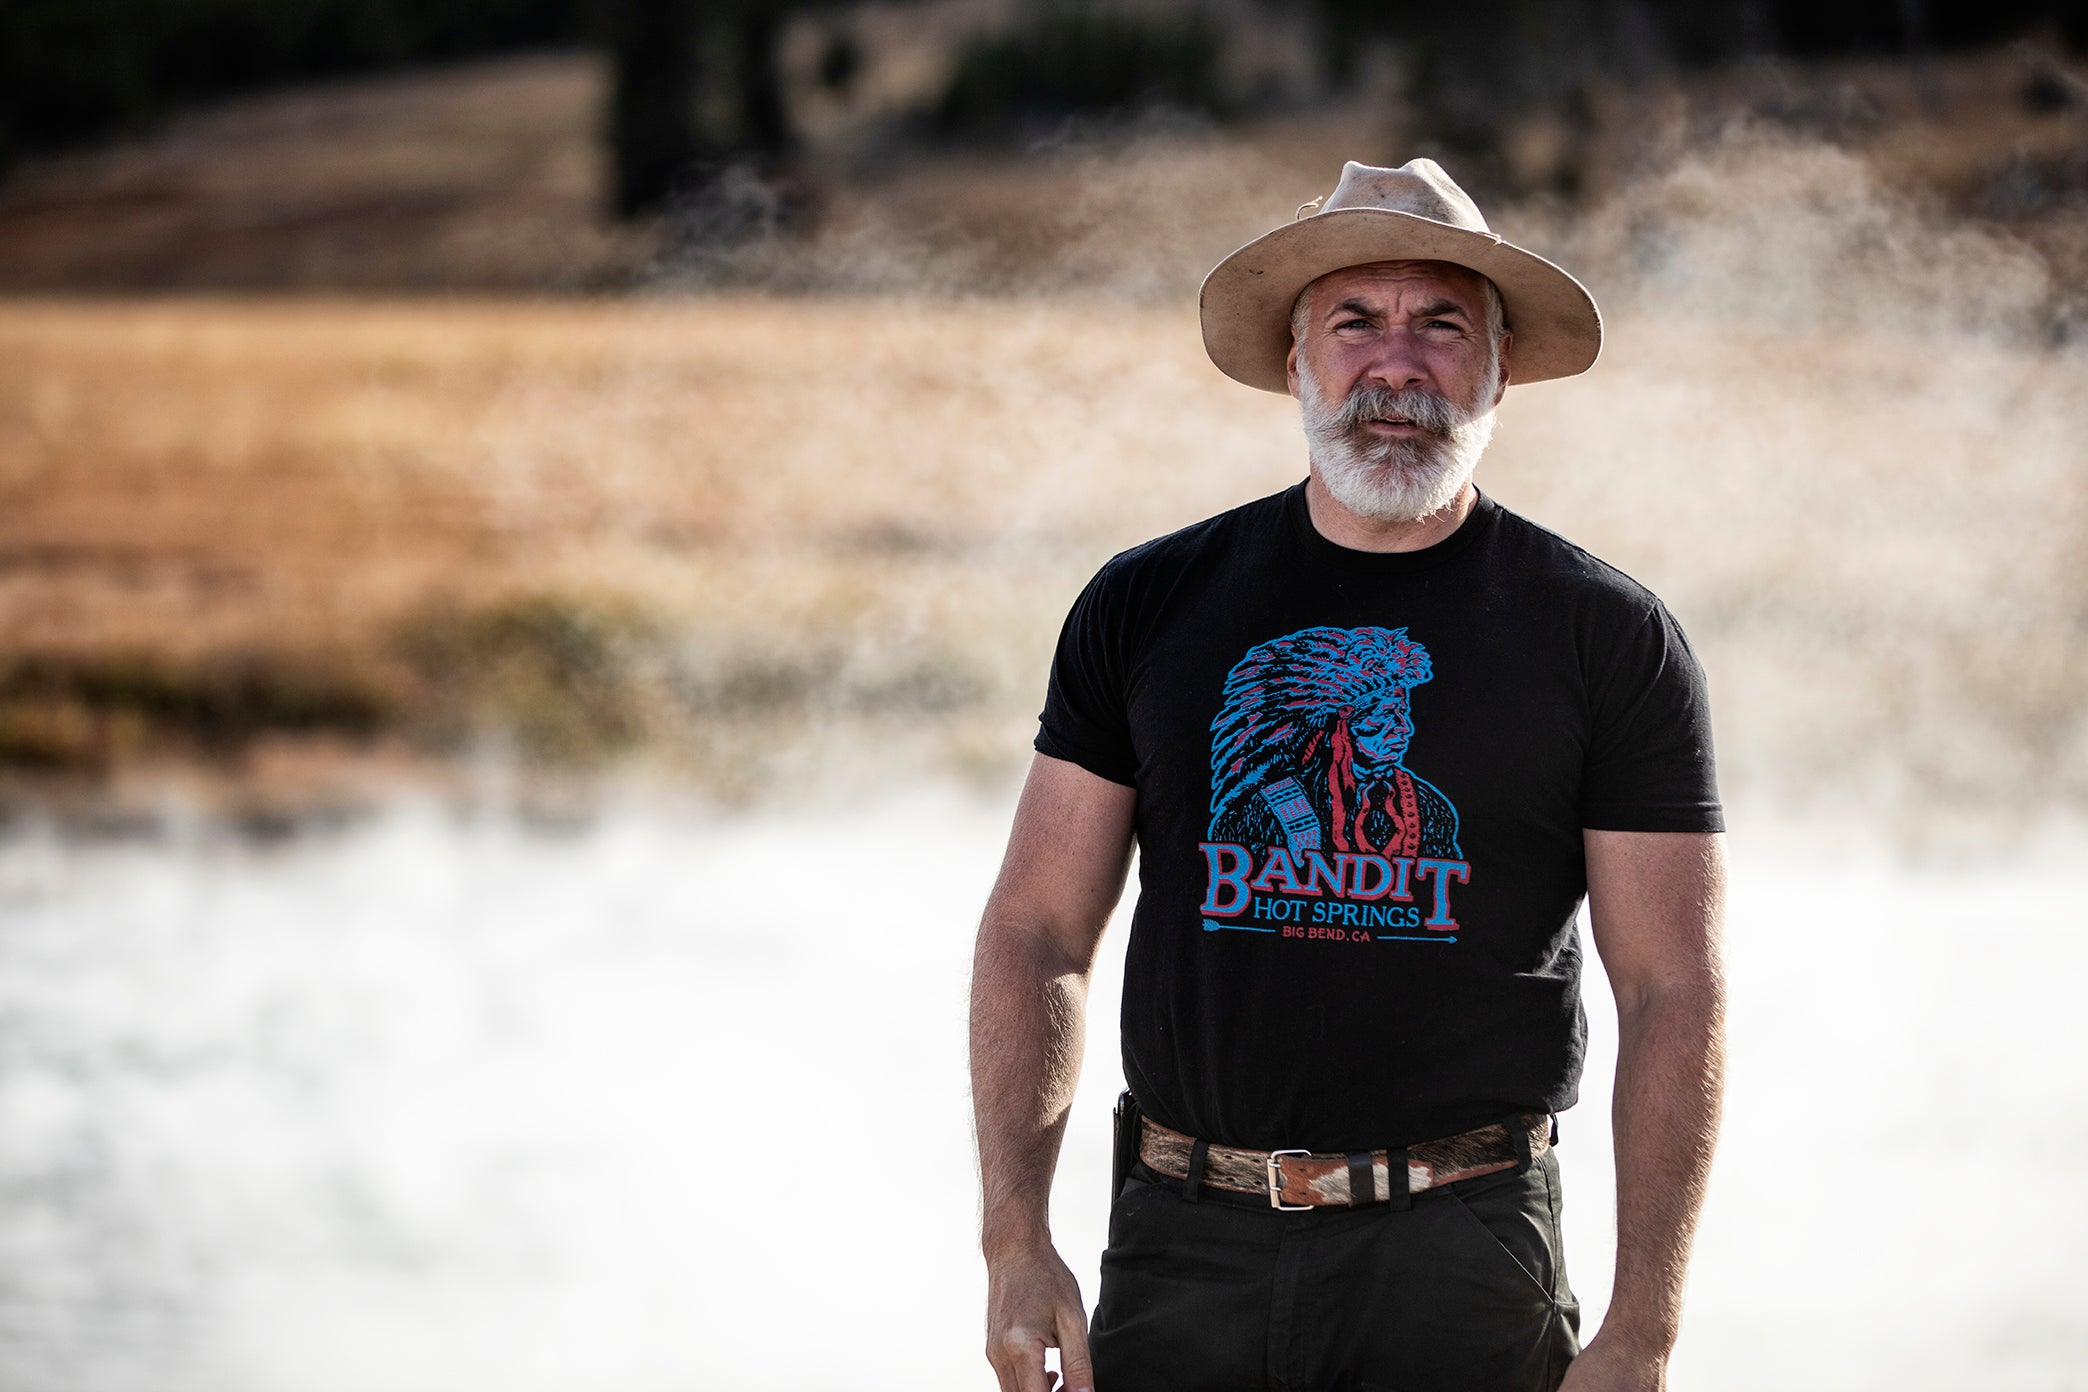 Bandit Hot Springs Black Tee